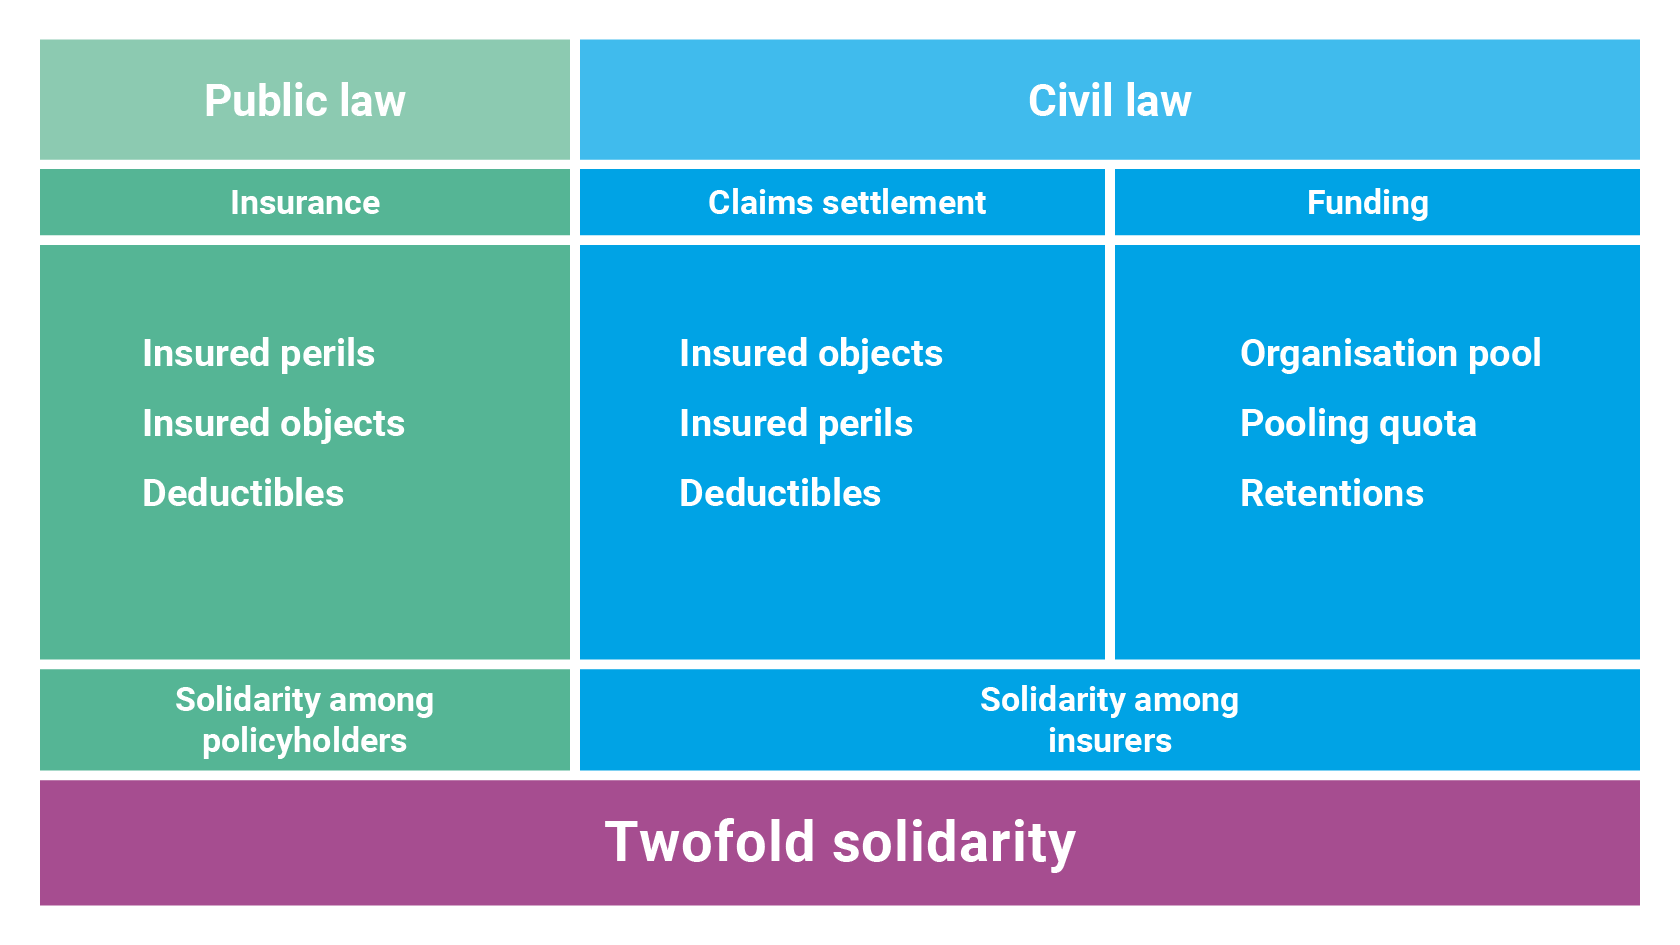 Twofold solidarity